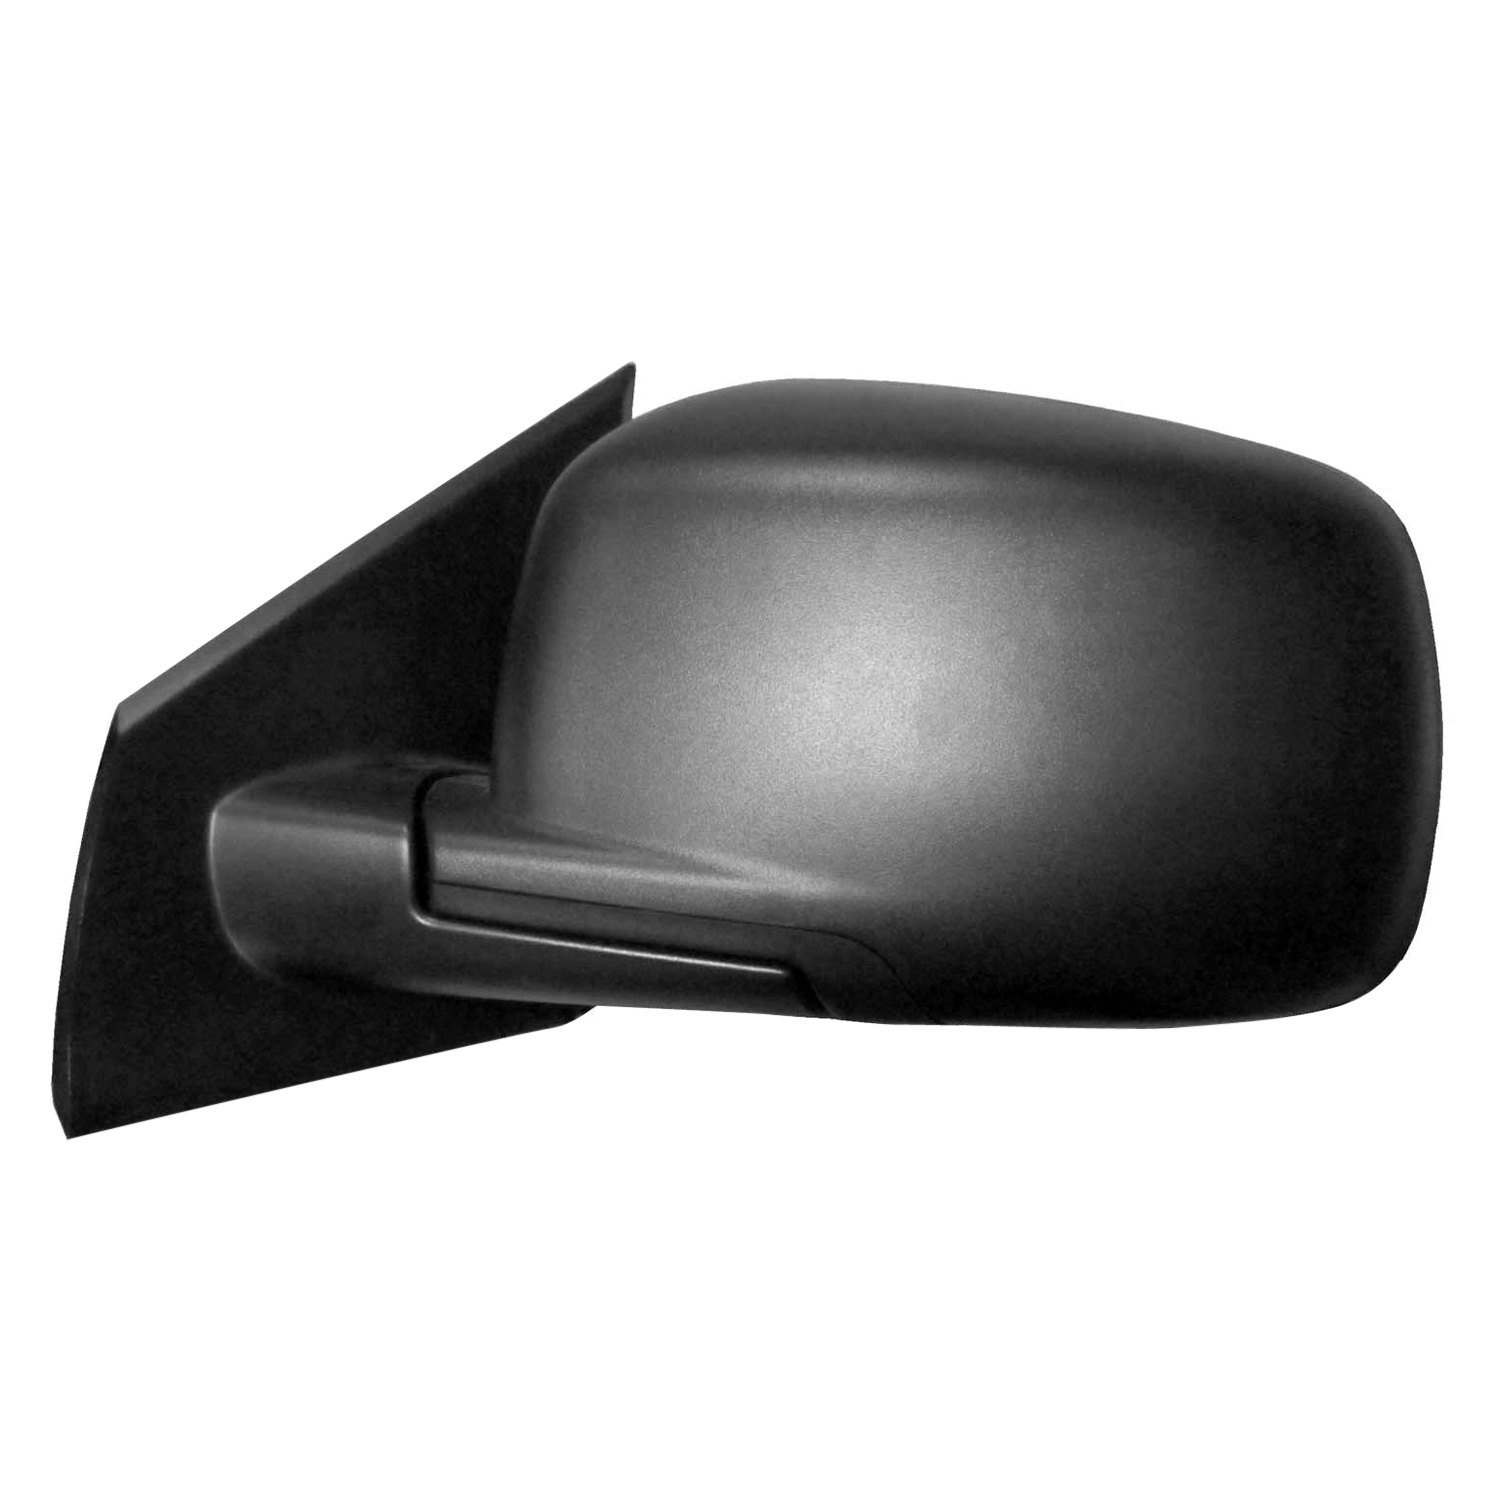 Replace dodge journey 2009 power side view mirror for Mirror replacement